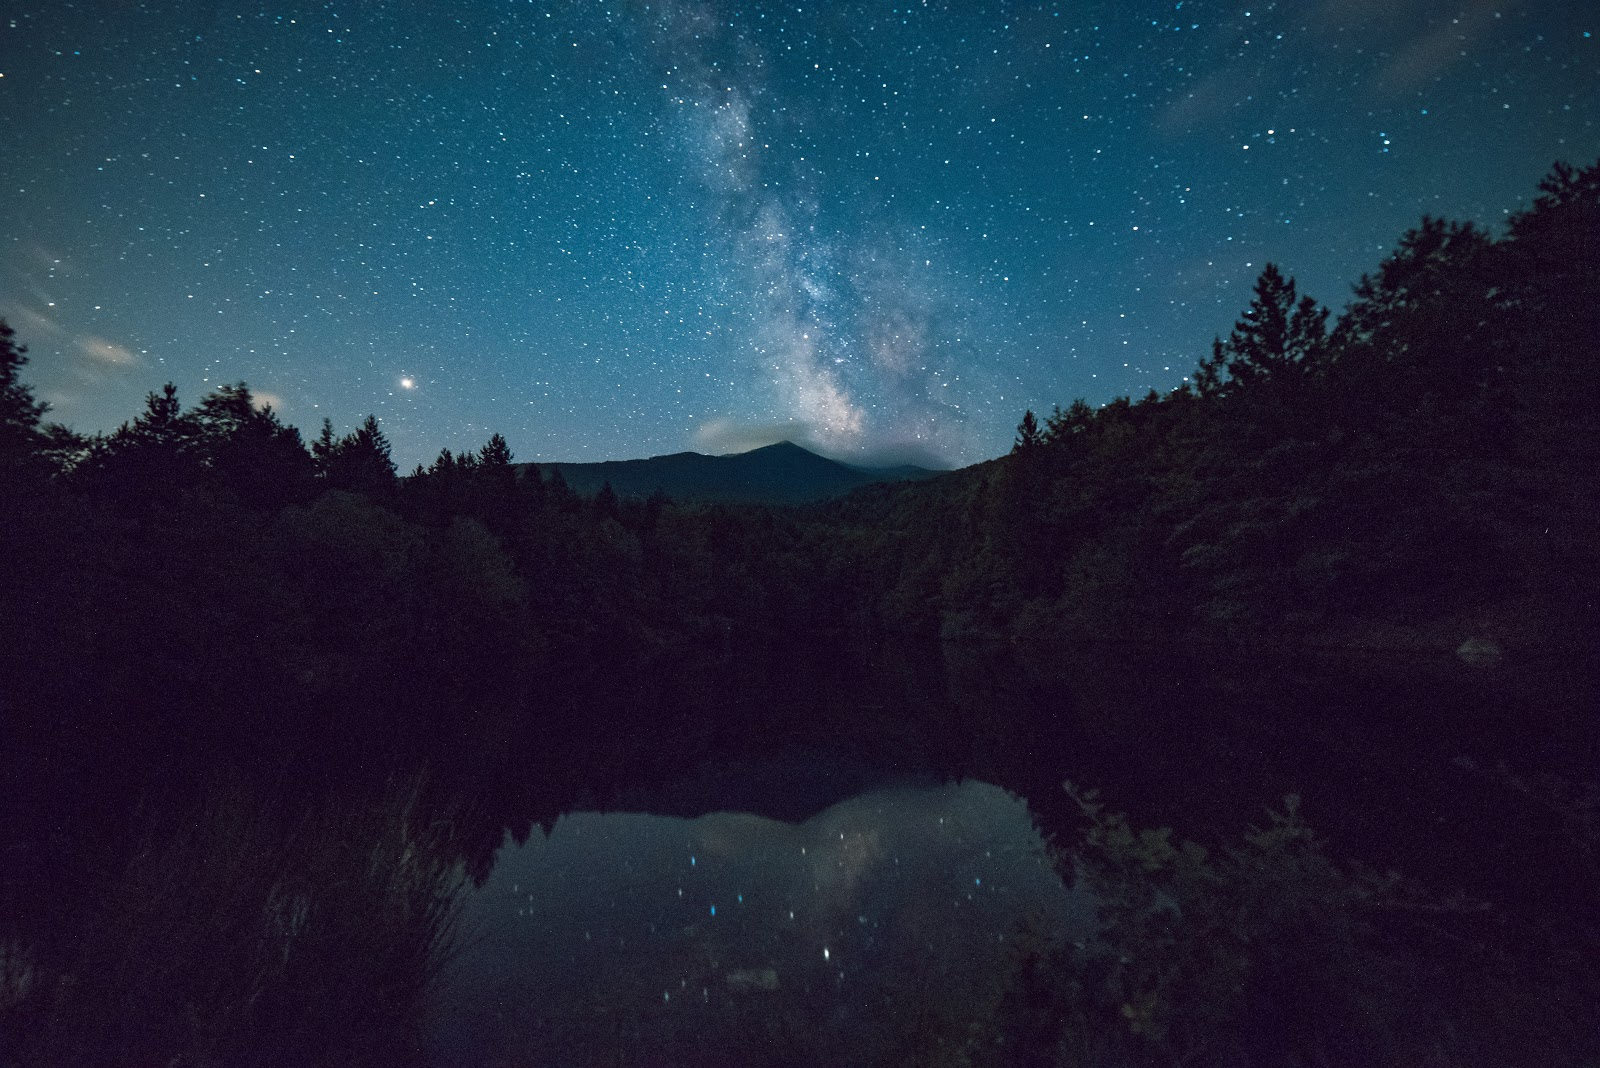 4k Wallpaper Calm Waters Dark Scenic View of Forest During Night Time